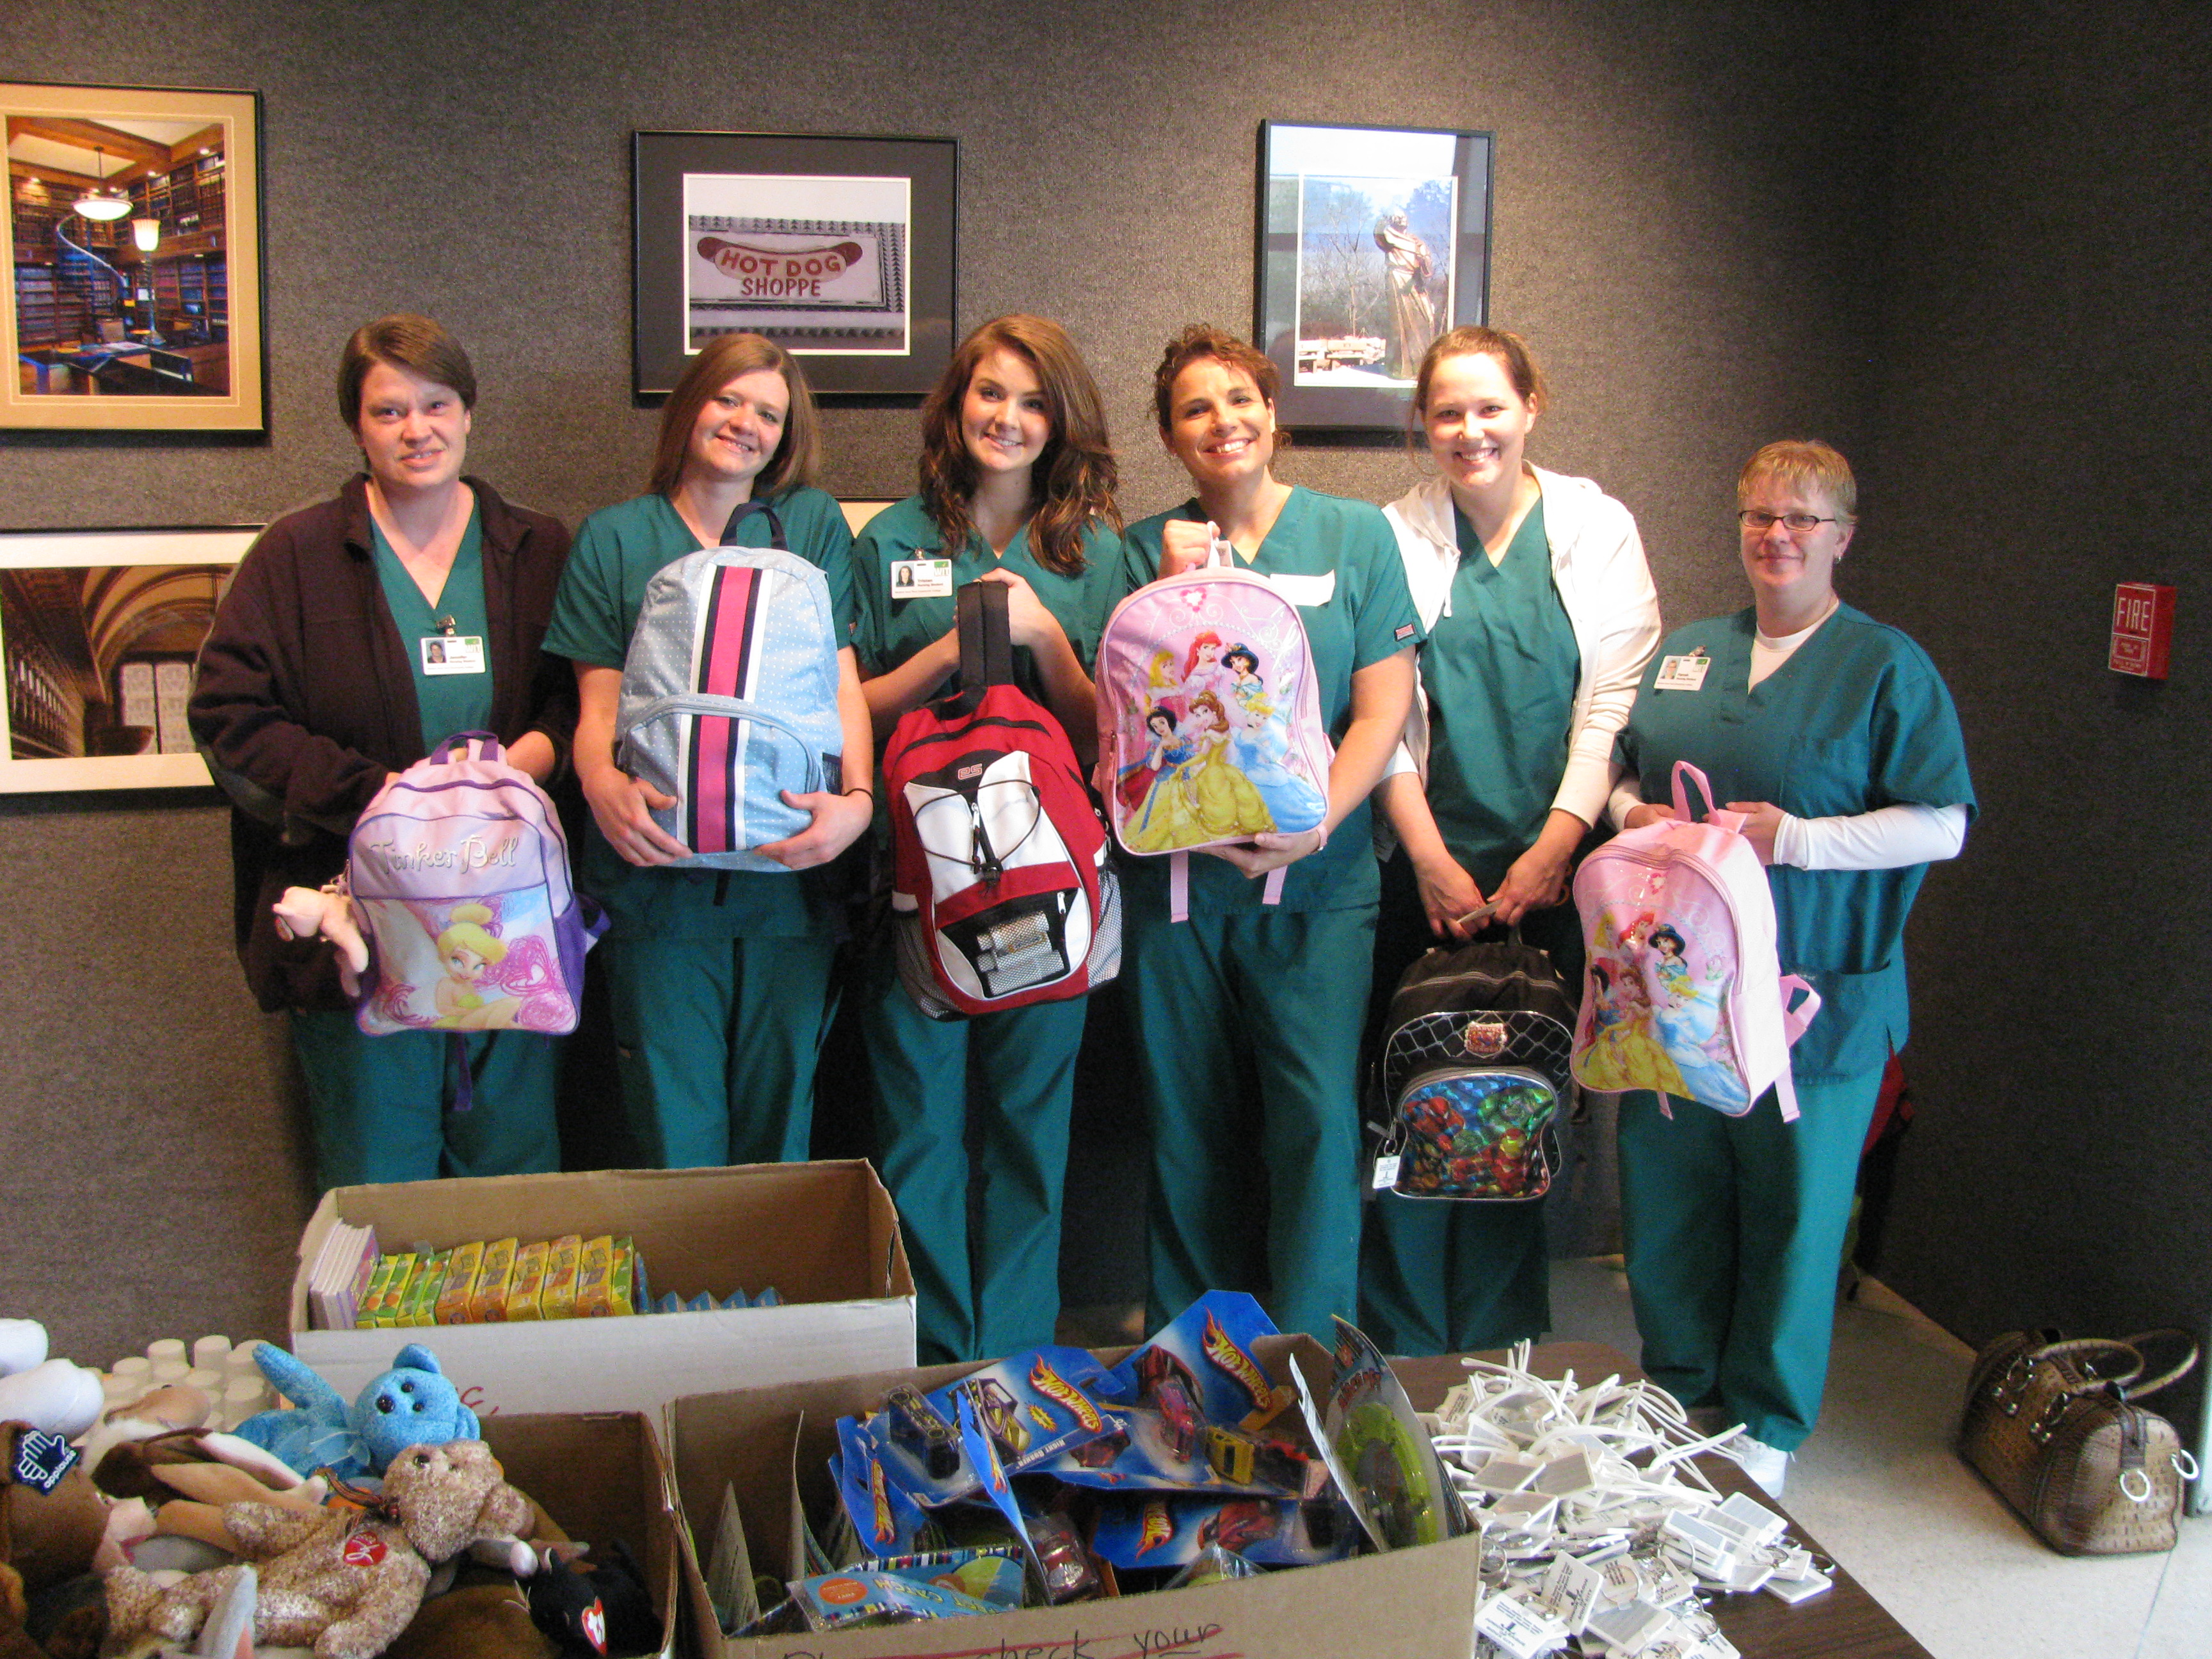 Backpacks filled with toys, comfort items